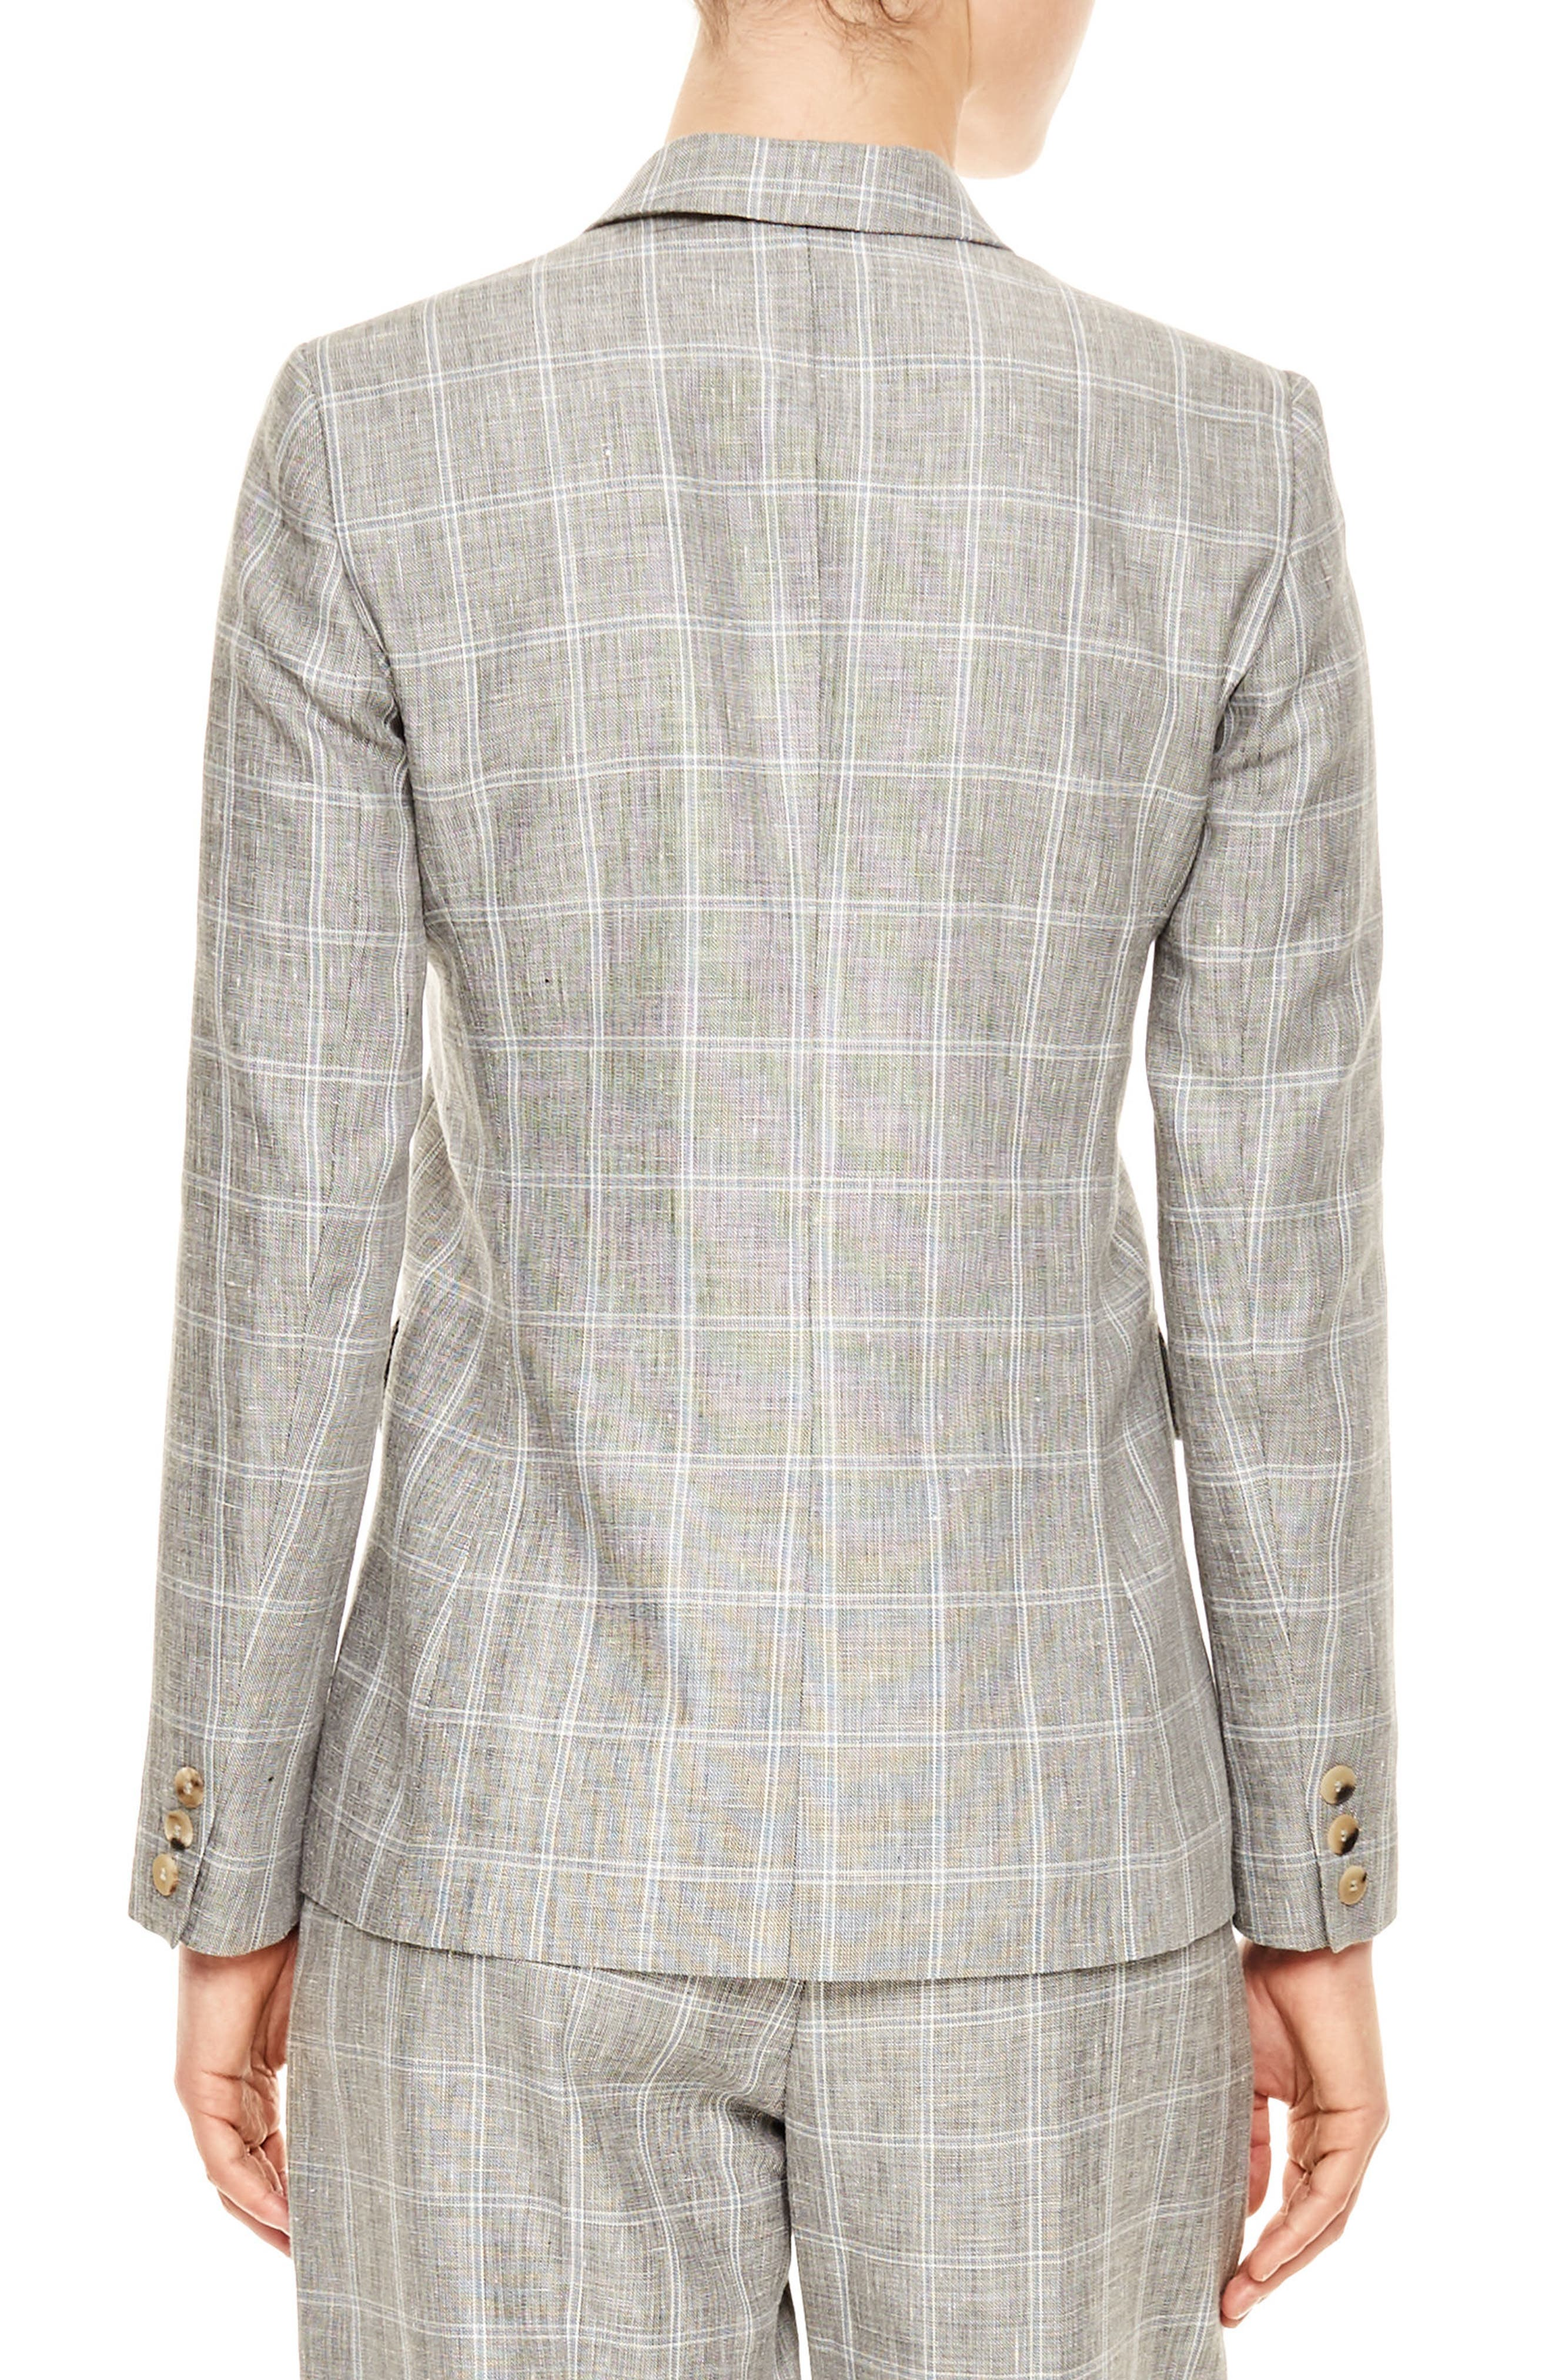 Gris Double Breasted Jacket,                             Alternate thumbnail 2, color,                             Grey